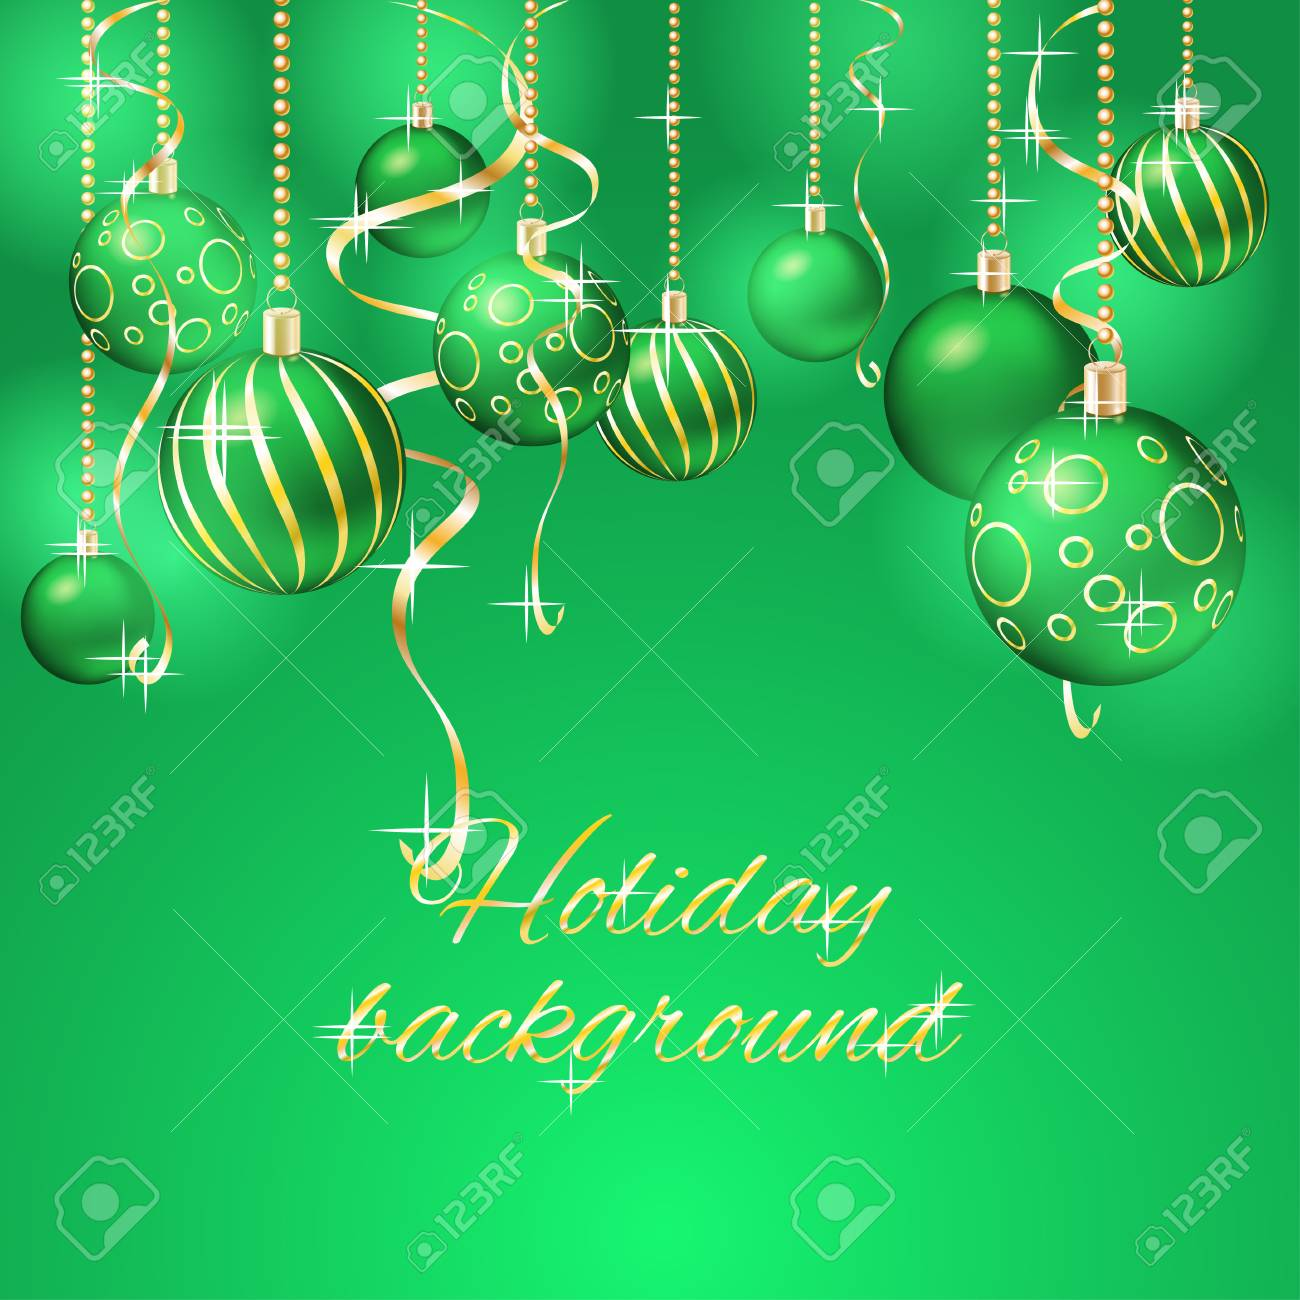 Elegant Christmas Background With Balls Stock Vector